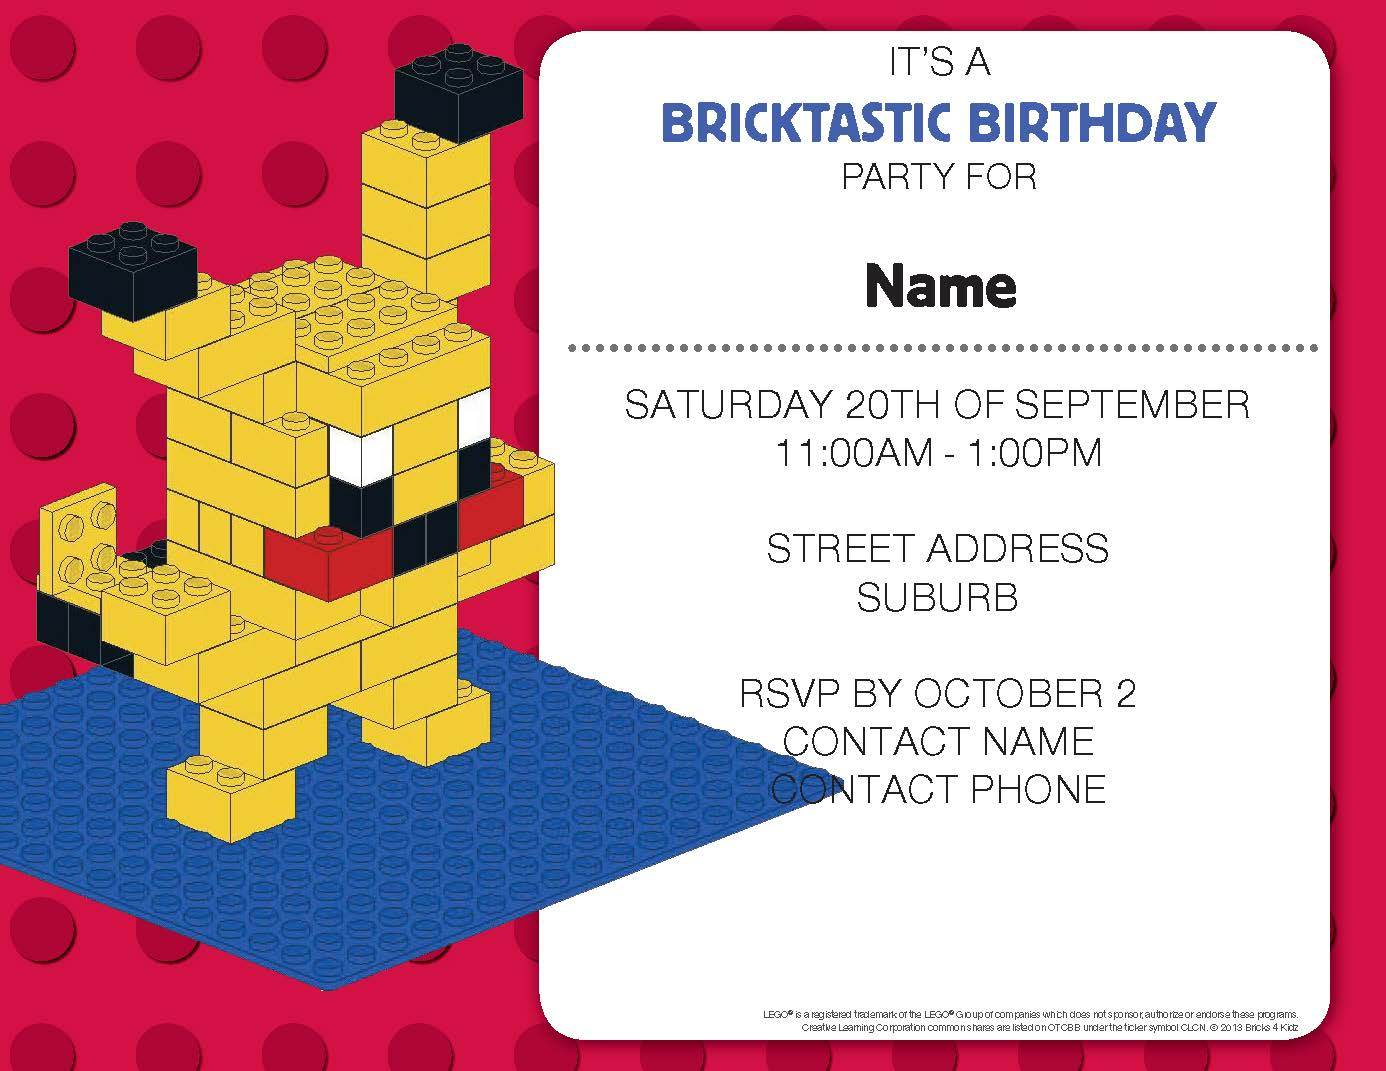 BRICKS 4 KIDZ PARTY INVITATION 1